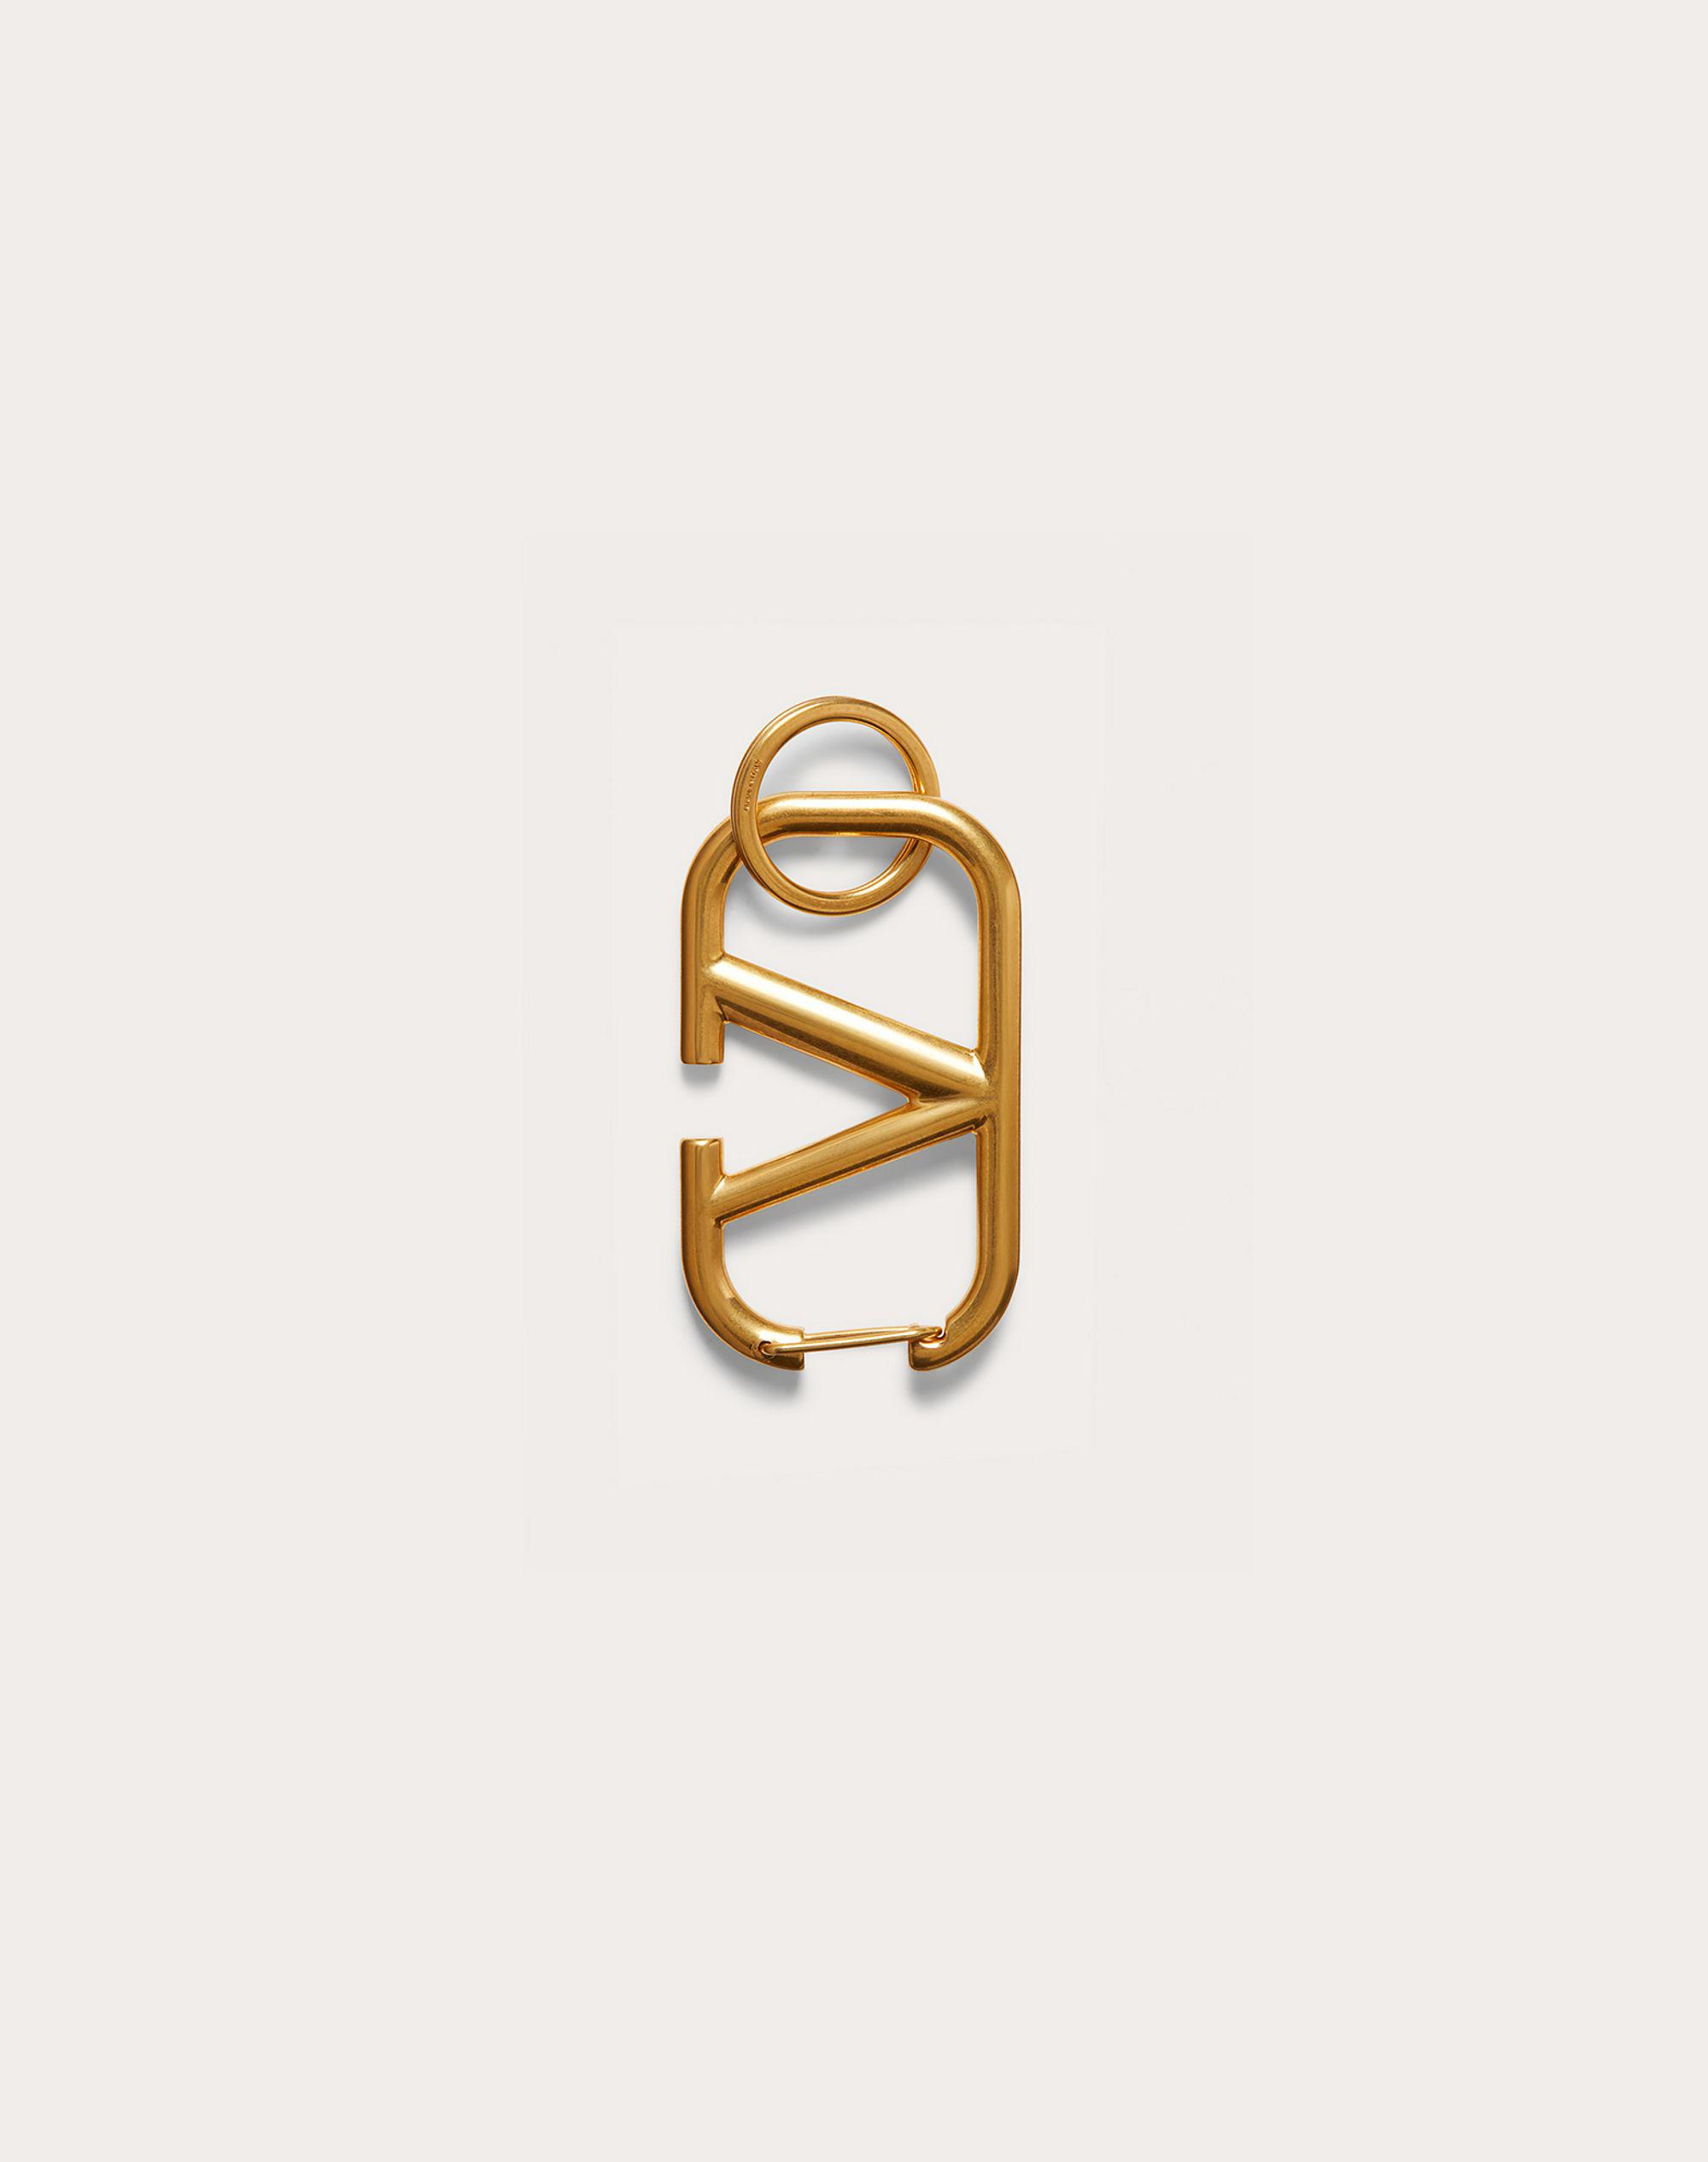 VLOGO SIGNATURE KEYCHAIN IN LACQUERED METAL 3